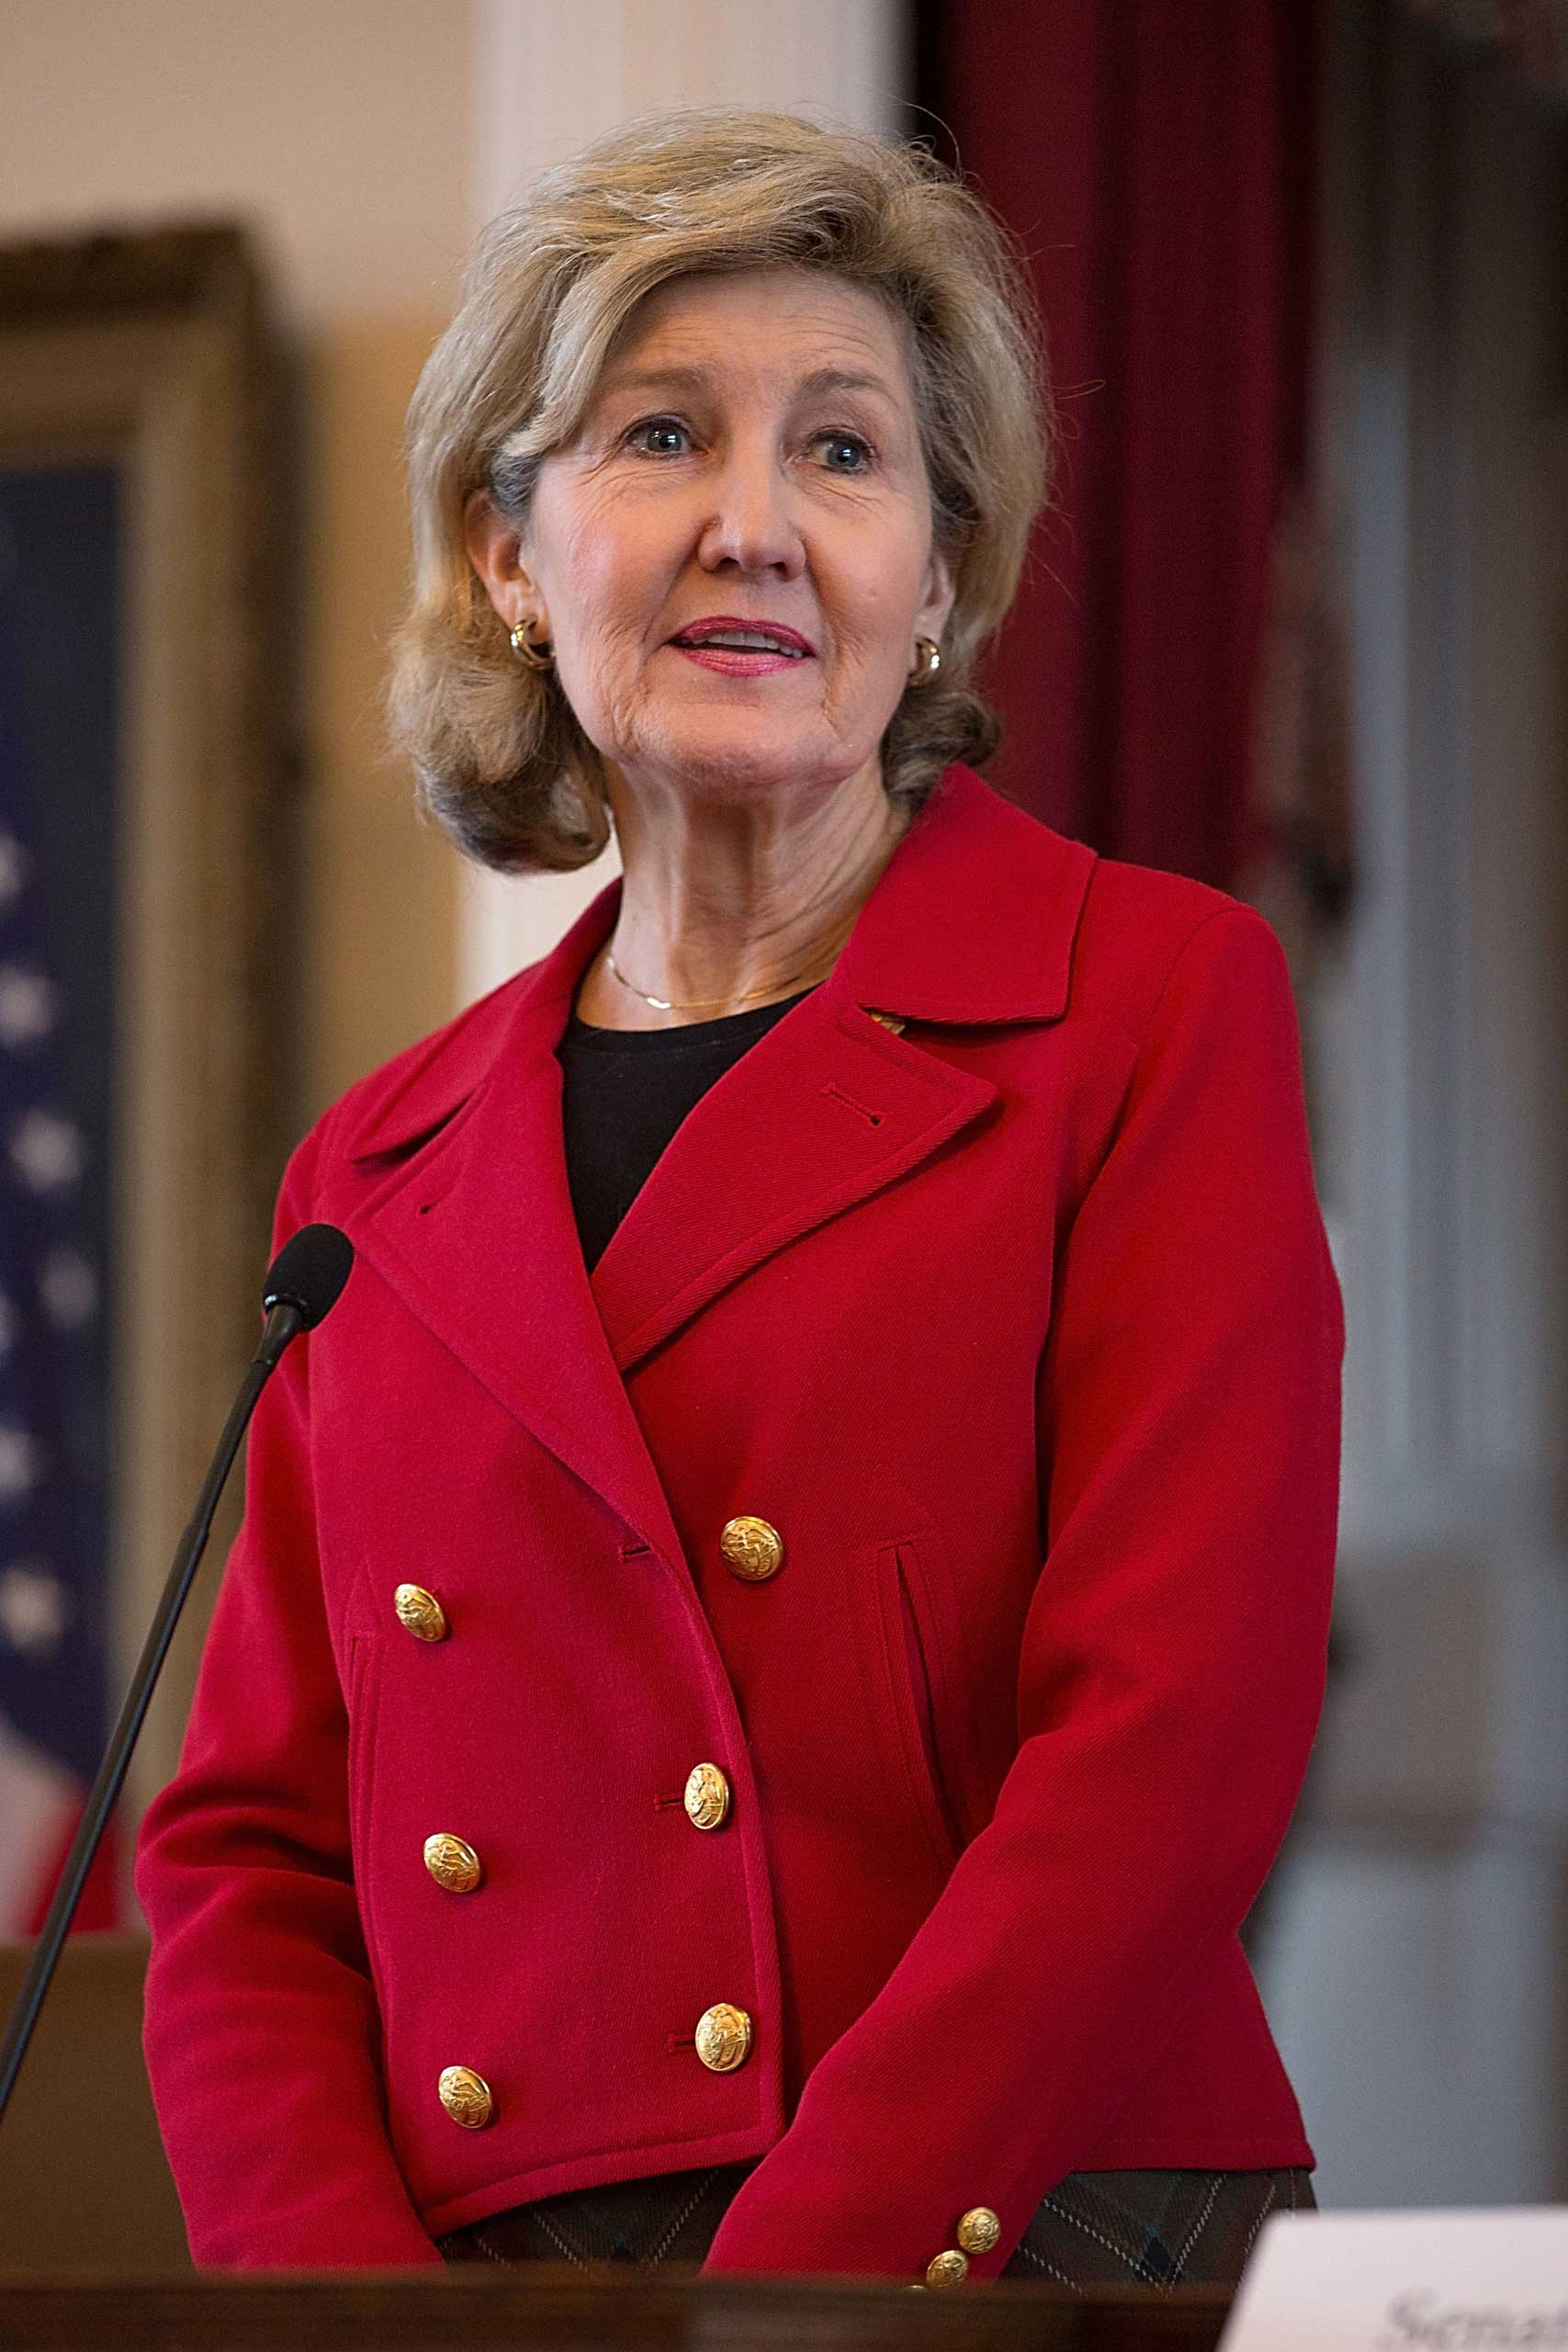 Kay Bailey Hutchison                                                              Years in Senate: 1993-2013                               Party: Republican                               State: Texas                                After assuming office in 1993, the Texas Senator was indicted on charges of official misconduct due to the misuse of state equipment and employees for her election campaign, as well as tampering with evidence to impede the district attorney's investigation. Hutchison was acquitted of all charges shortly after her trial began, and she still went on to serve in the Senate for twenty years.                                                              — James Downie and Baird Kellogg